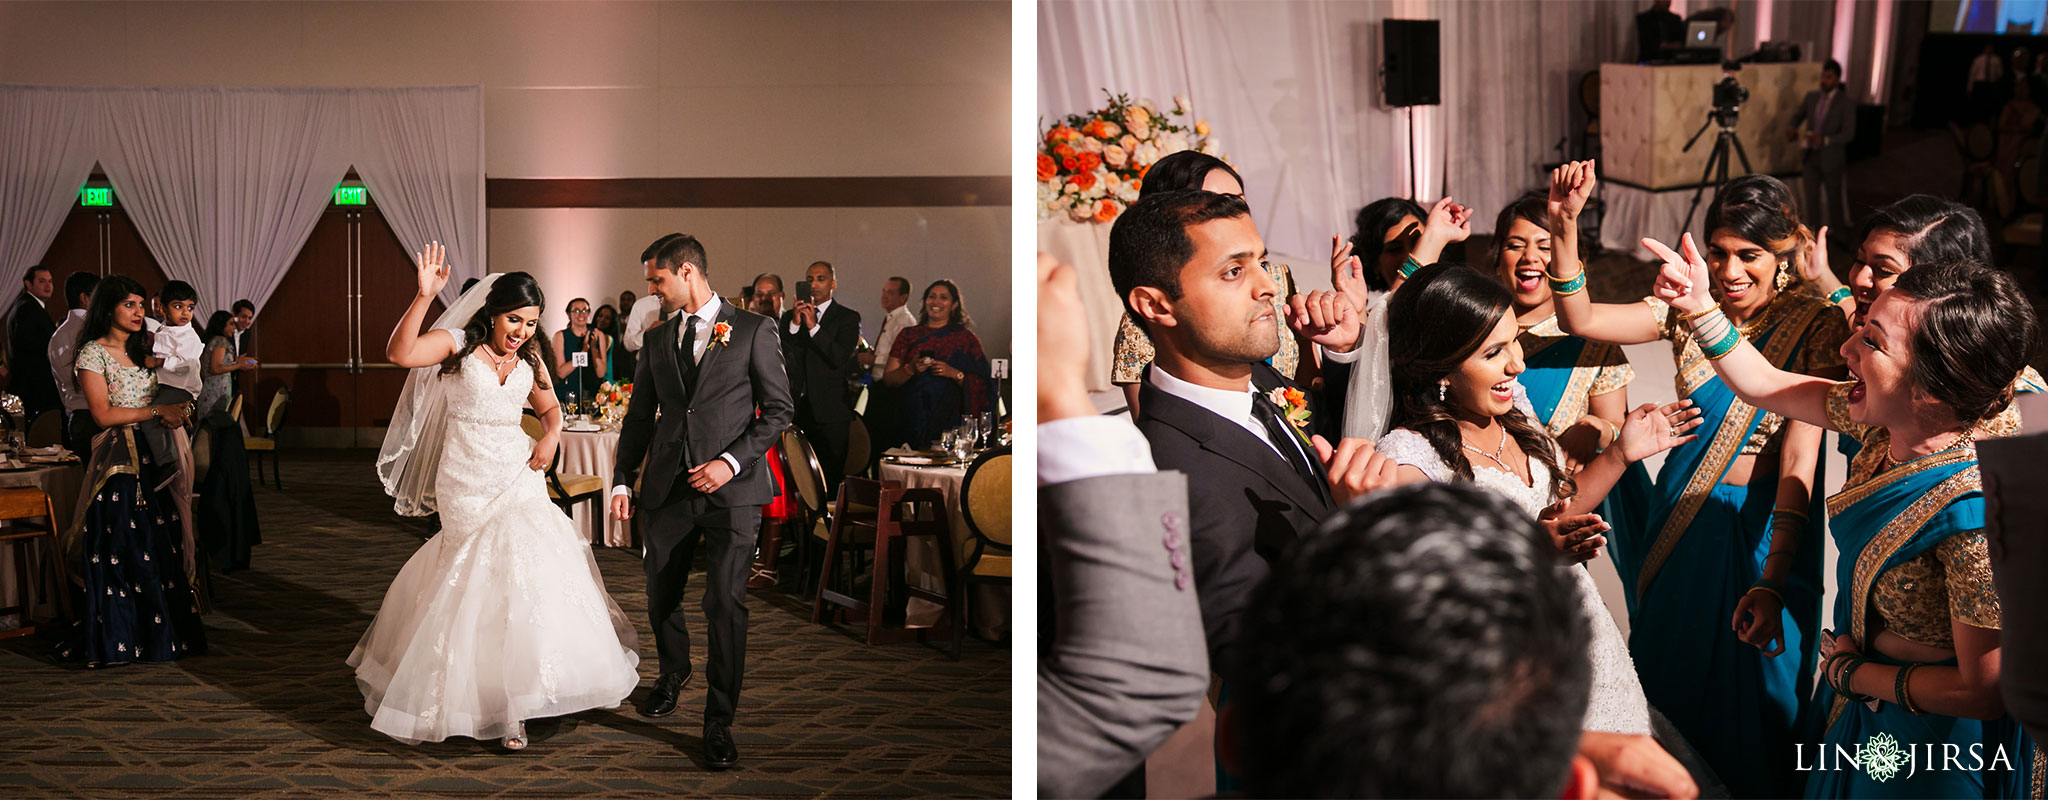 32 sheraton fairplex inland empire indian wedding photography